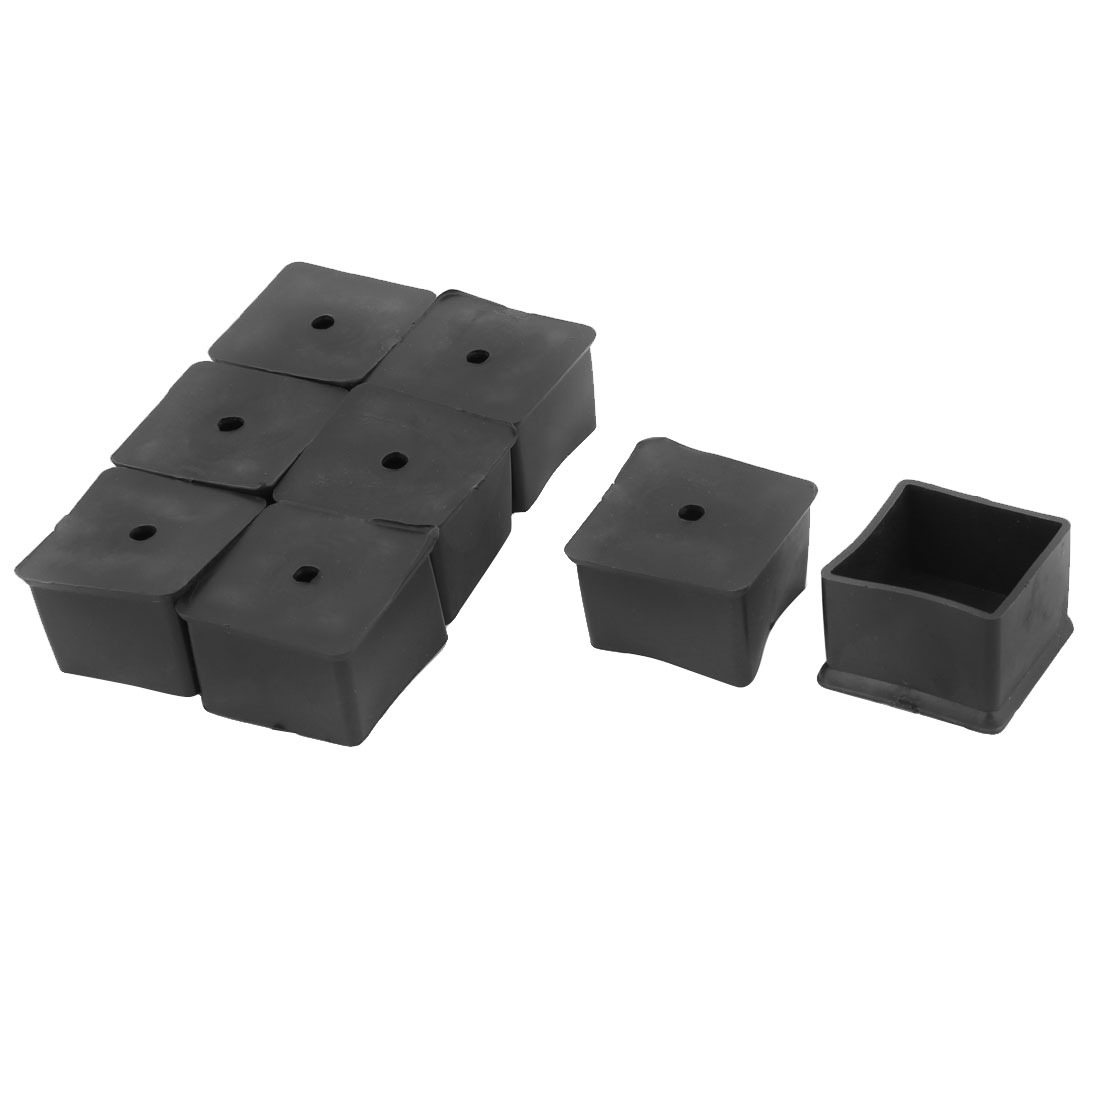 Home Rubber Square Anti Slip Chair Furniture Foot Cover Black 40 x 40mm 8 Pcs